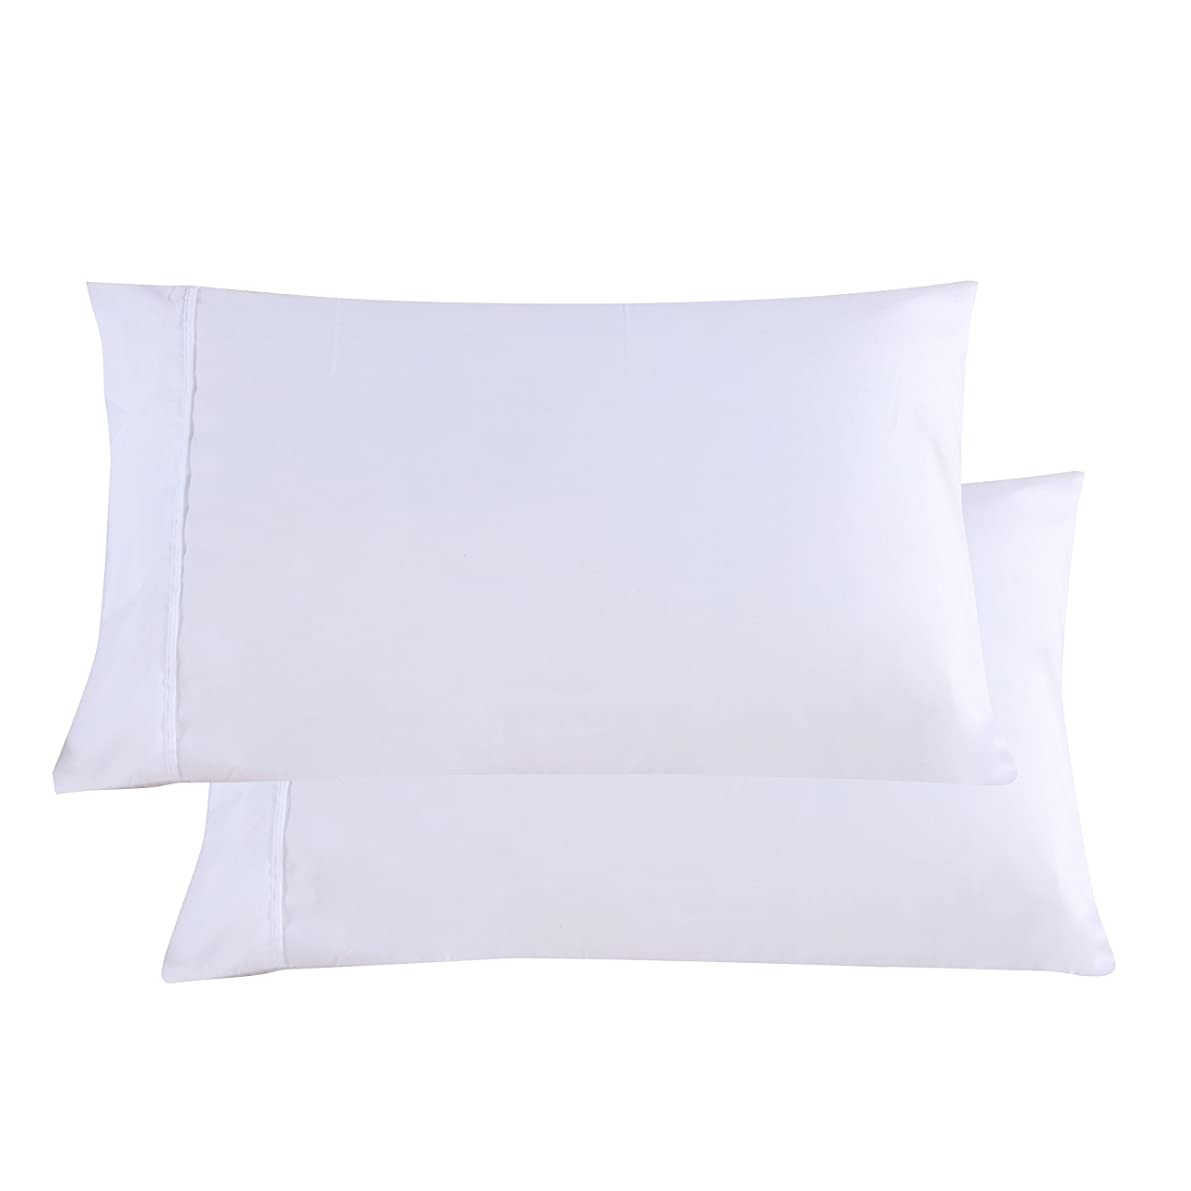 Mohap Pillowcases White Set of 2 Envelope Closure End Brushed Microfiber 1800 Super Soft and Very Durable Queen 20 by 30 inch